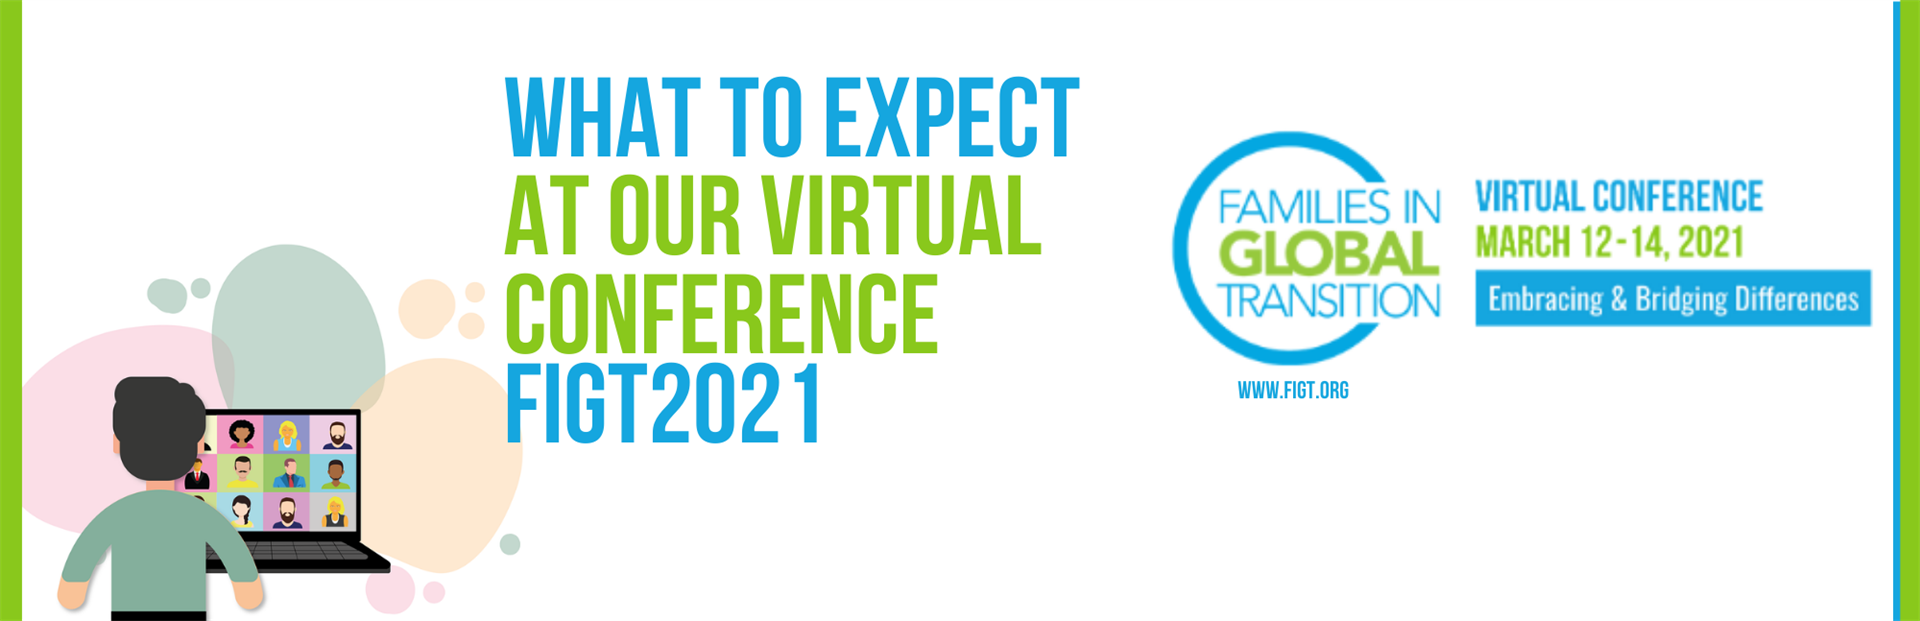 what to expect at figt2021 virtual conference